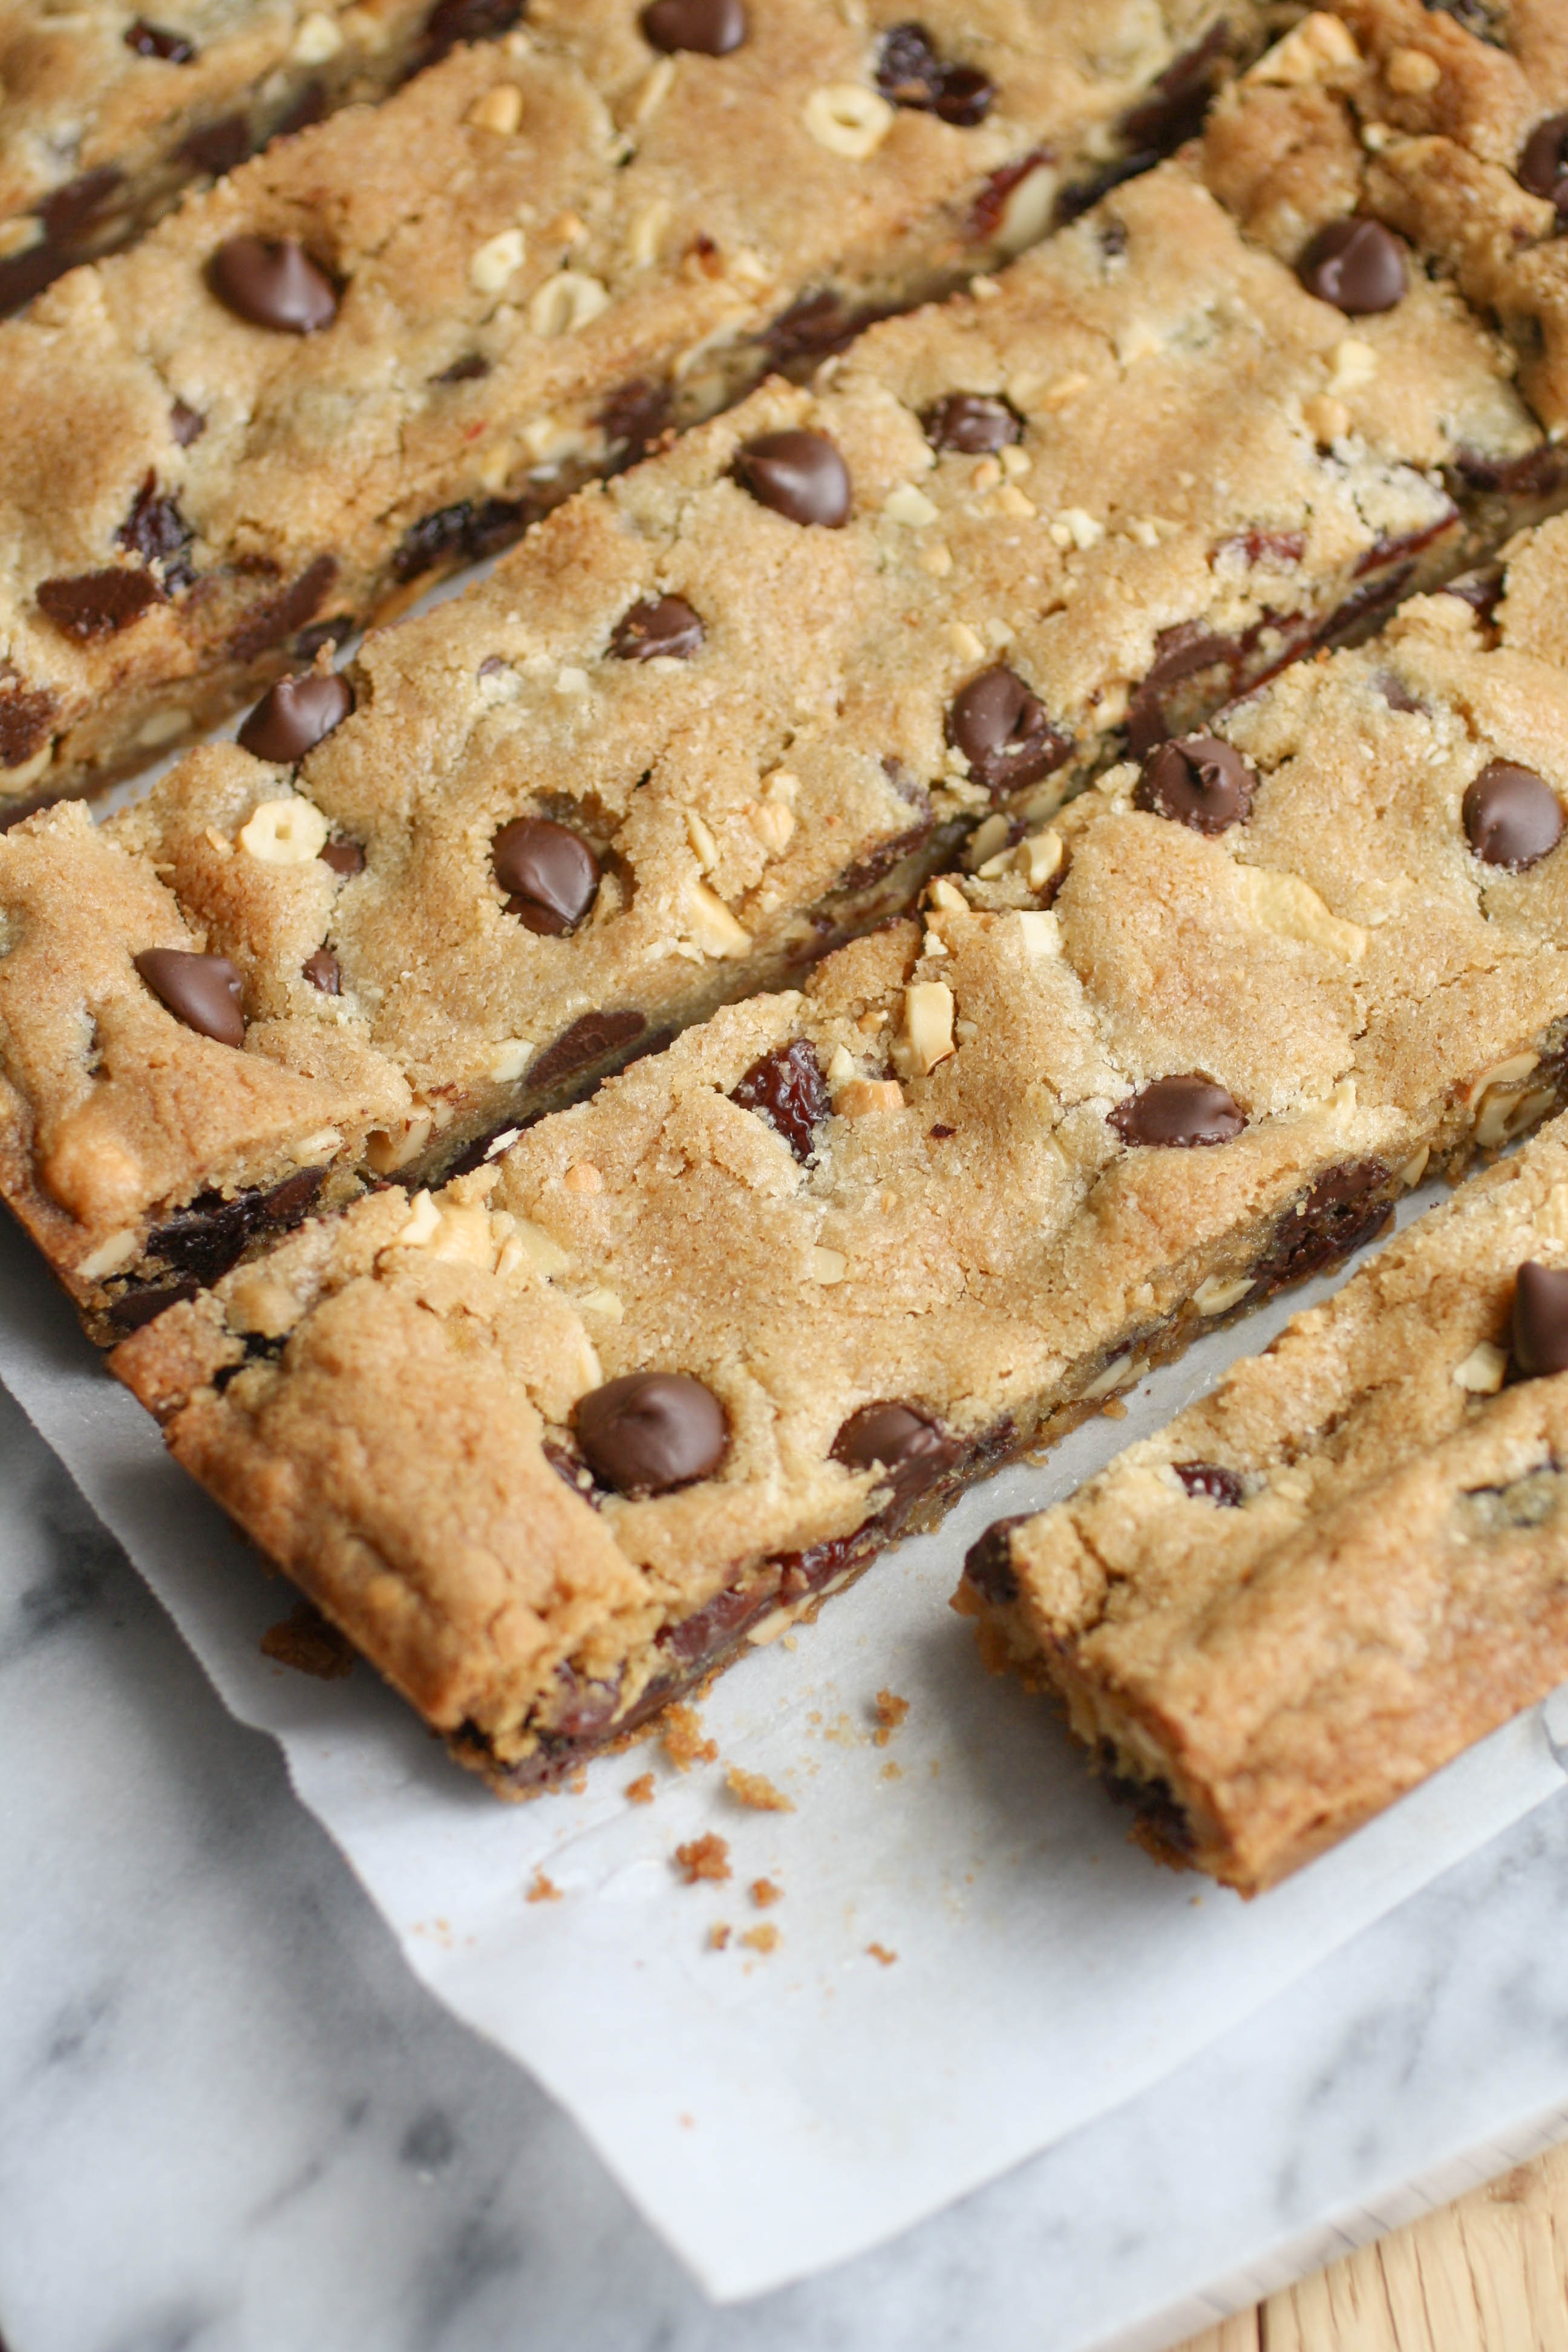 Dark Chocolate Chip Cherry Cashew Bars are so delightful! Keep 'em from the kids (or share if you'd like!) and enjoy them yourself!